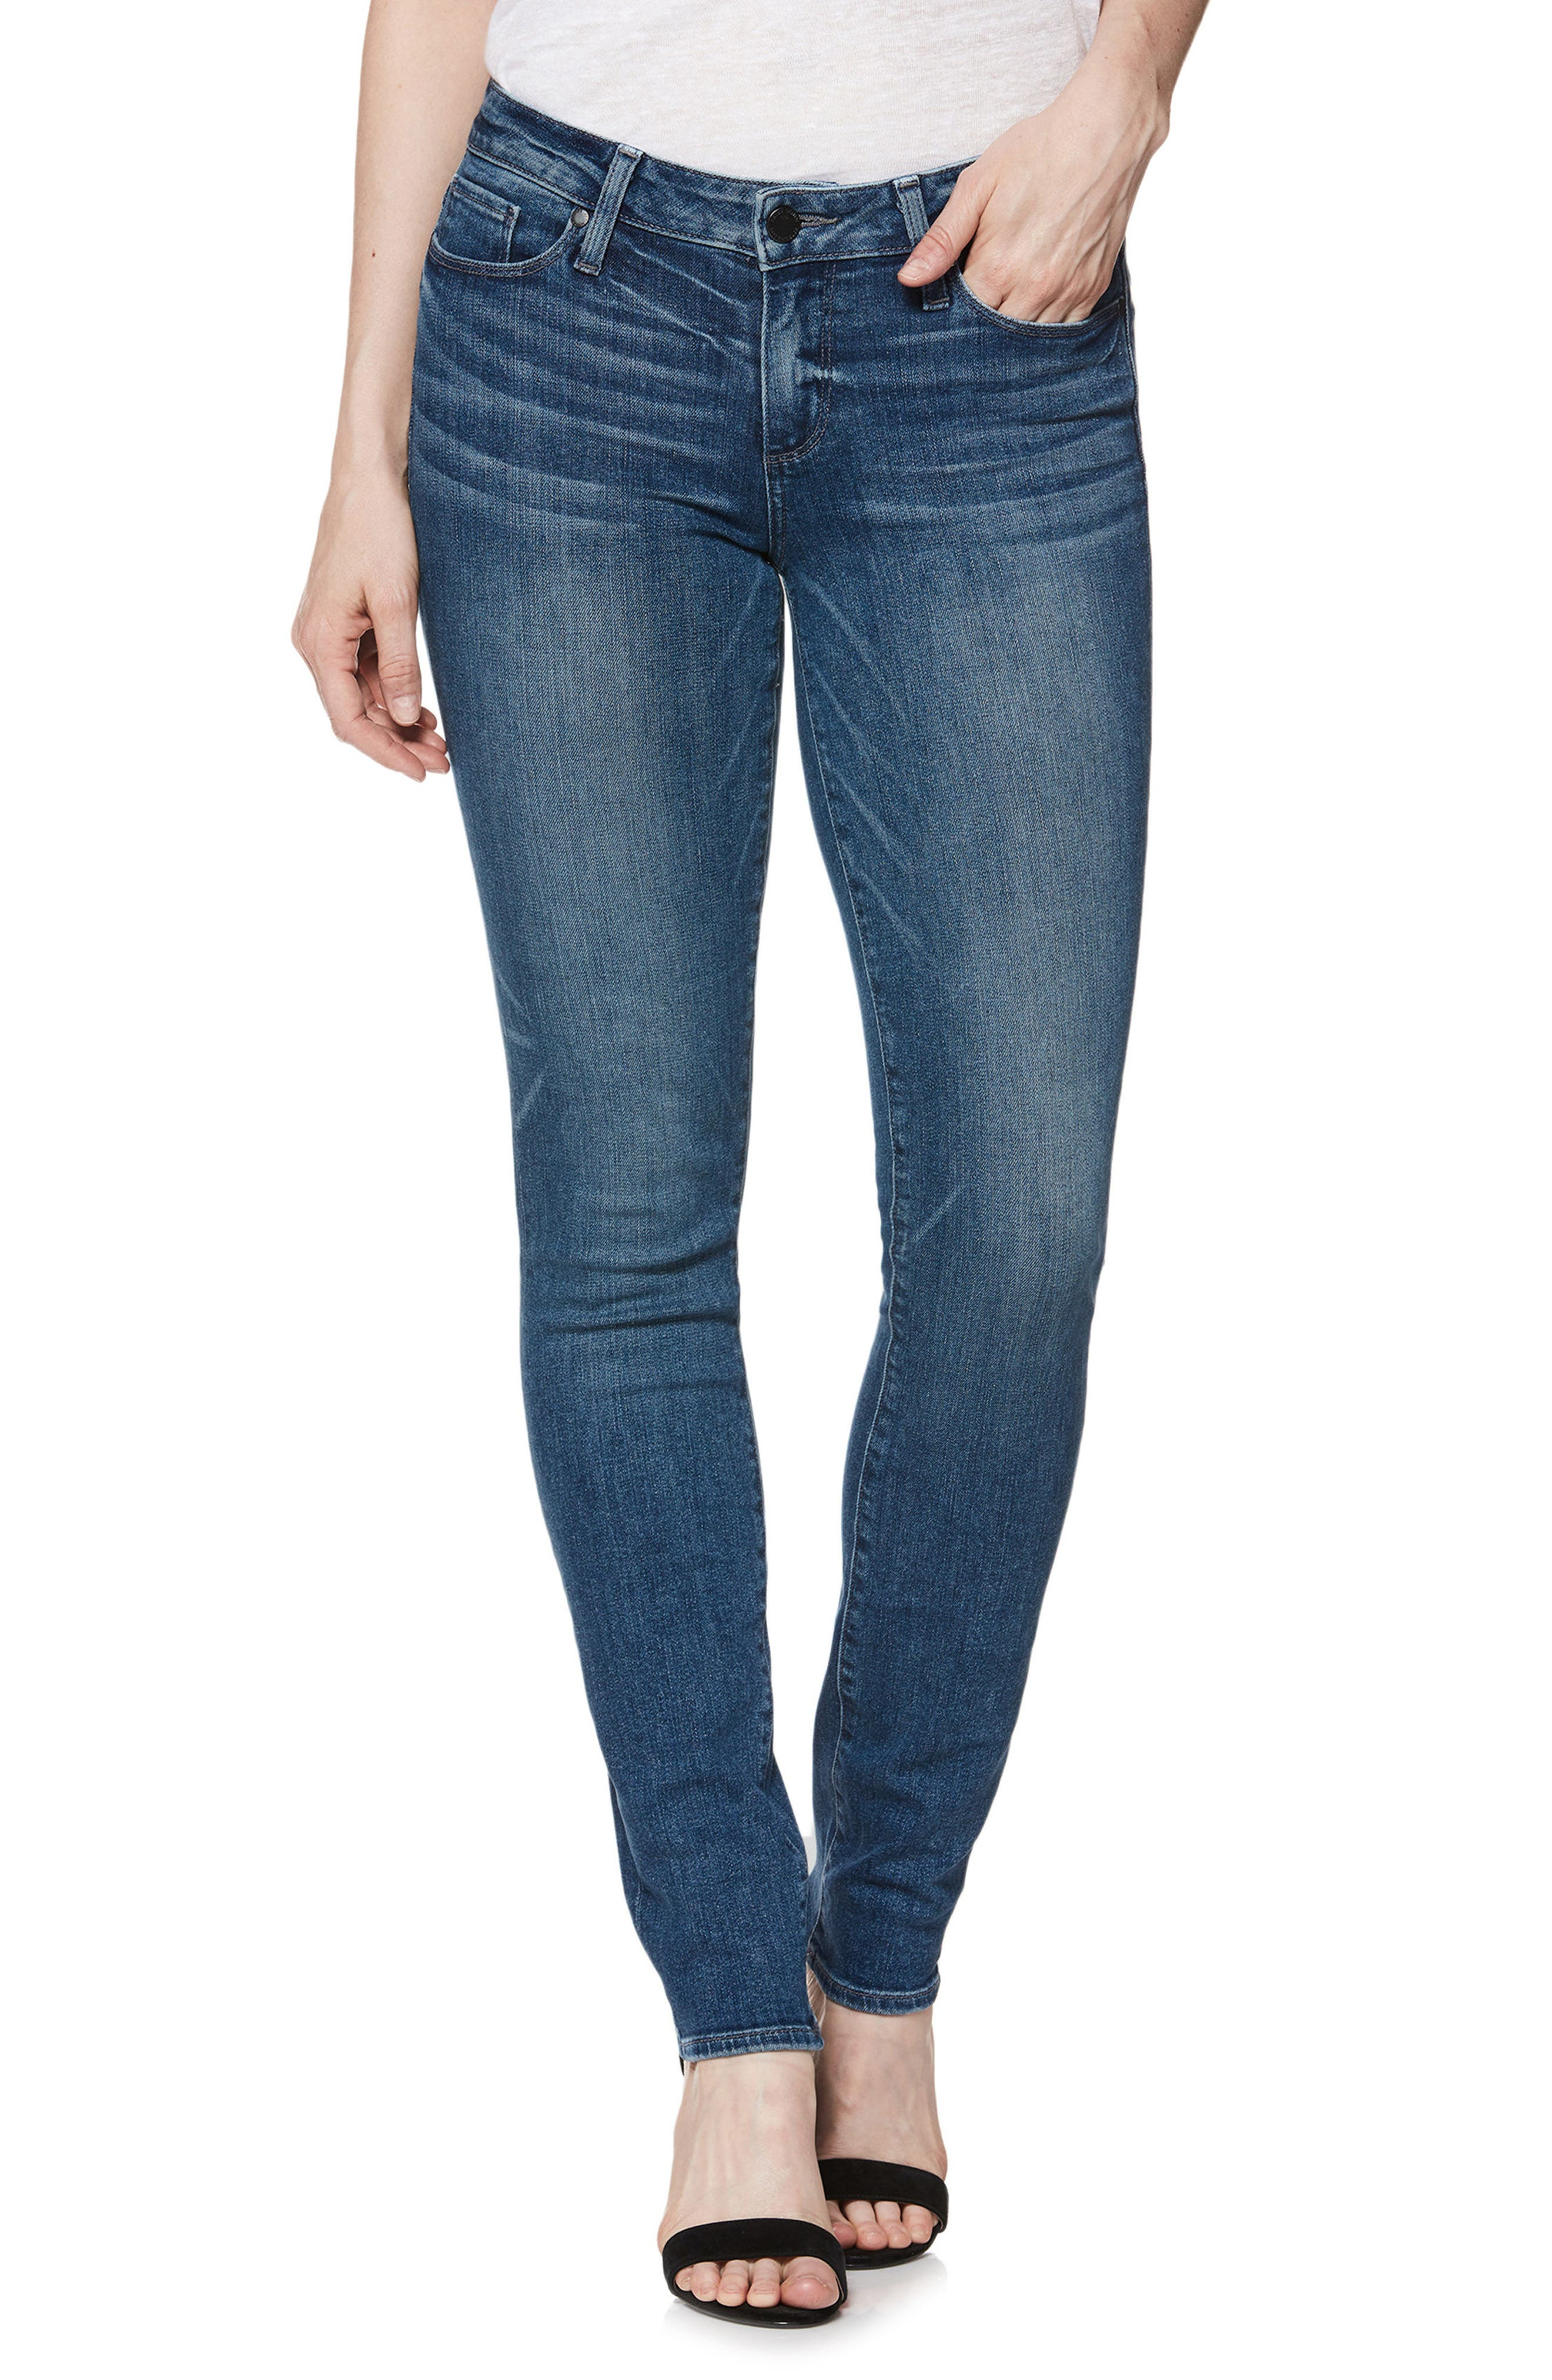 Transcend Vintage - Skyline Skinny Jeans,                             Main thumbnail 1, color,                             400